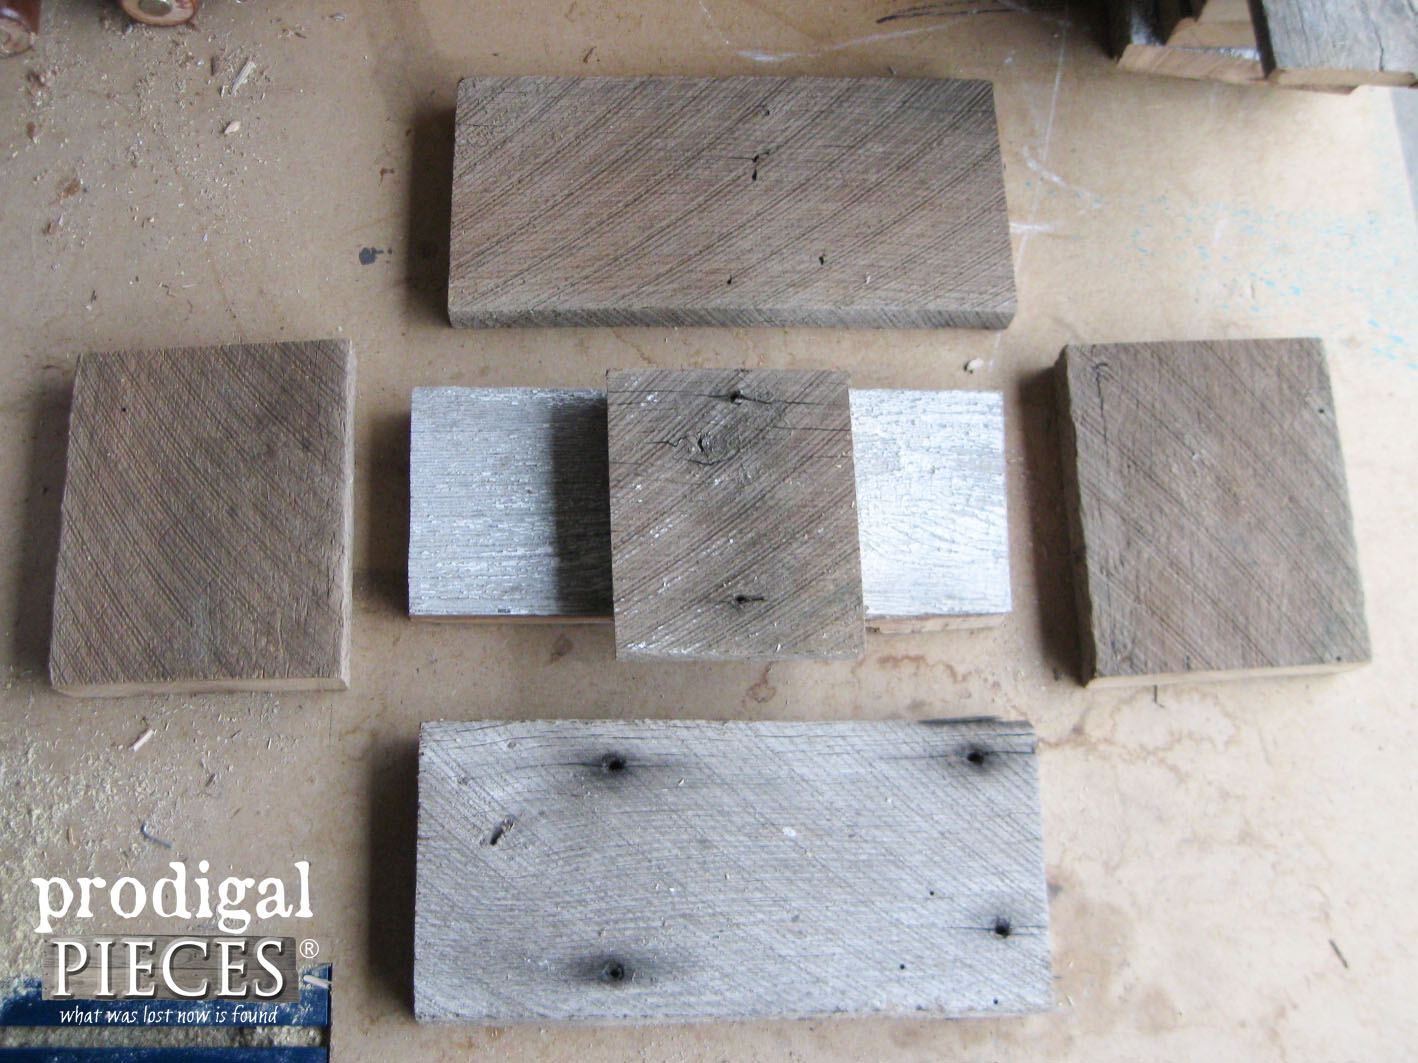 Barn Wood Pieces Cut for Wooden Caddy | Prodigal Pieces | www.prodigalpieces.com